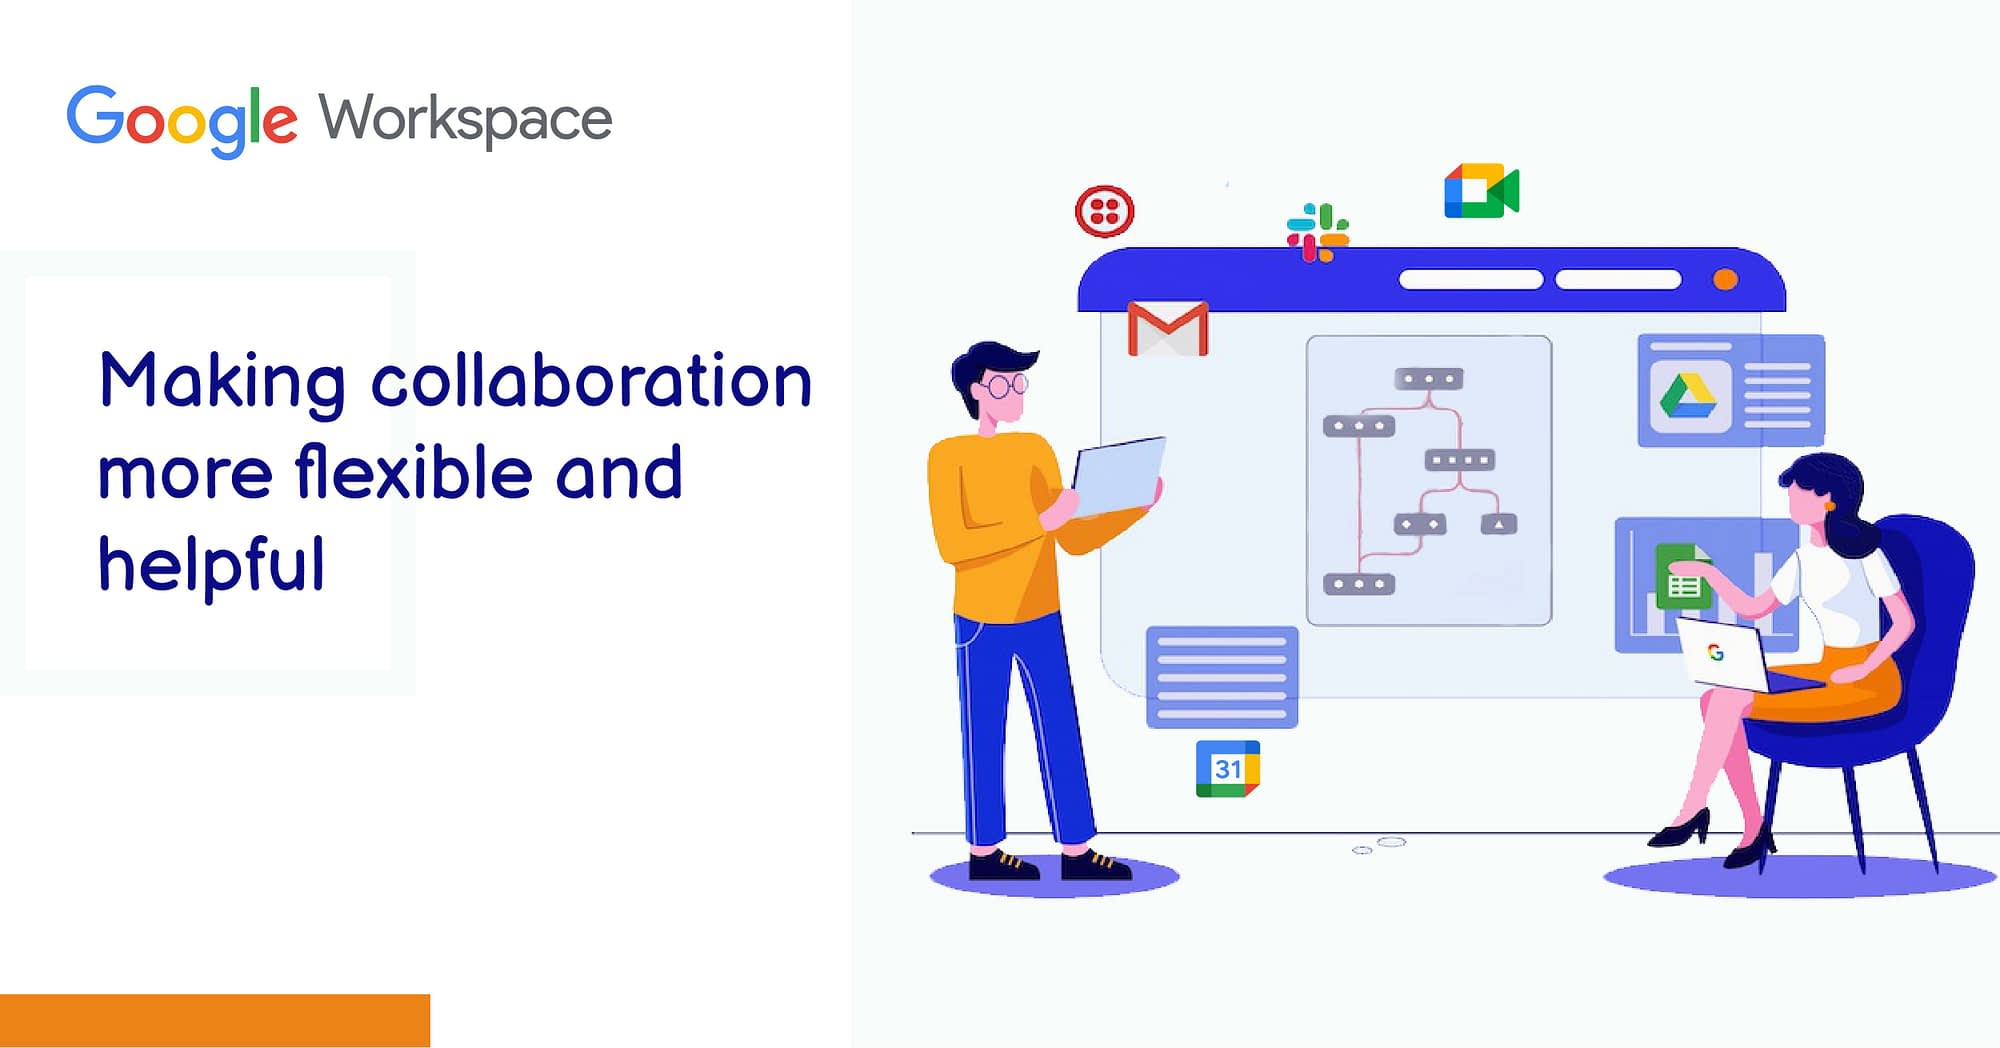 Making collaboration more flexible and helpful